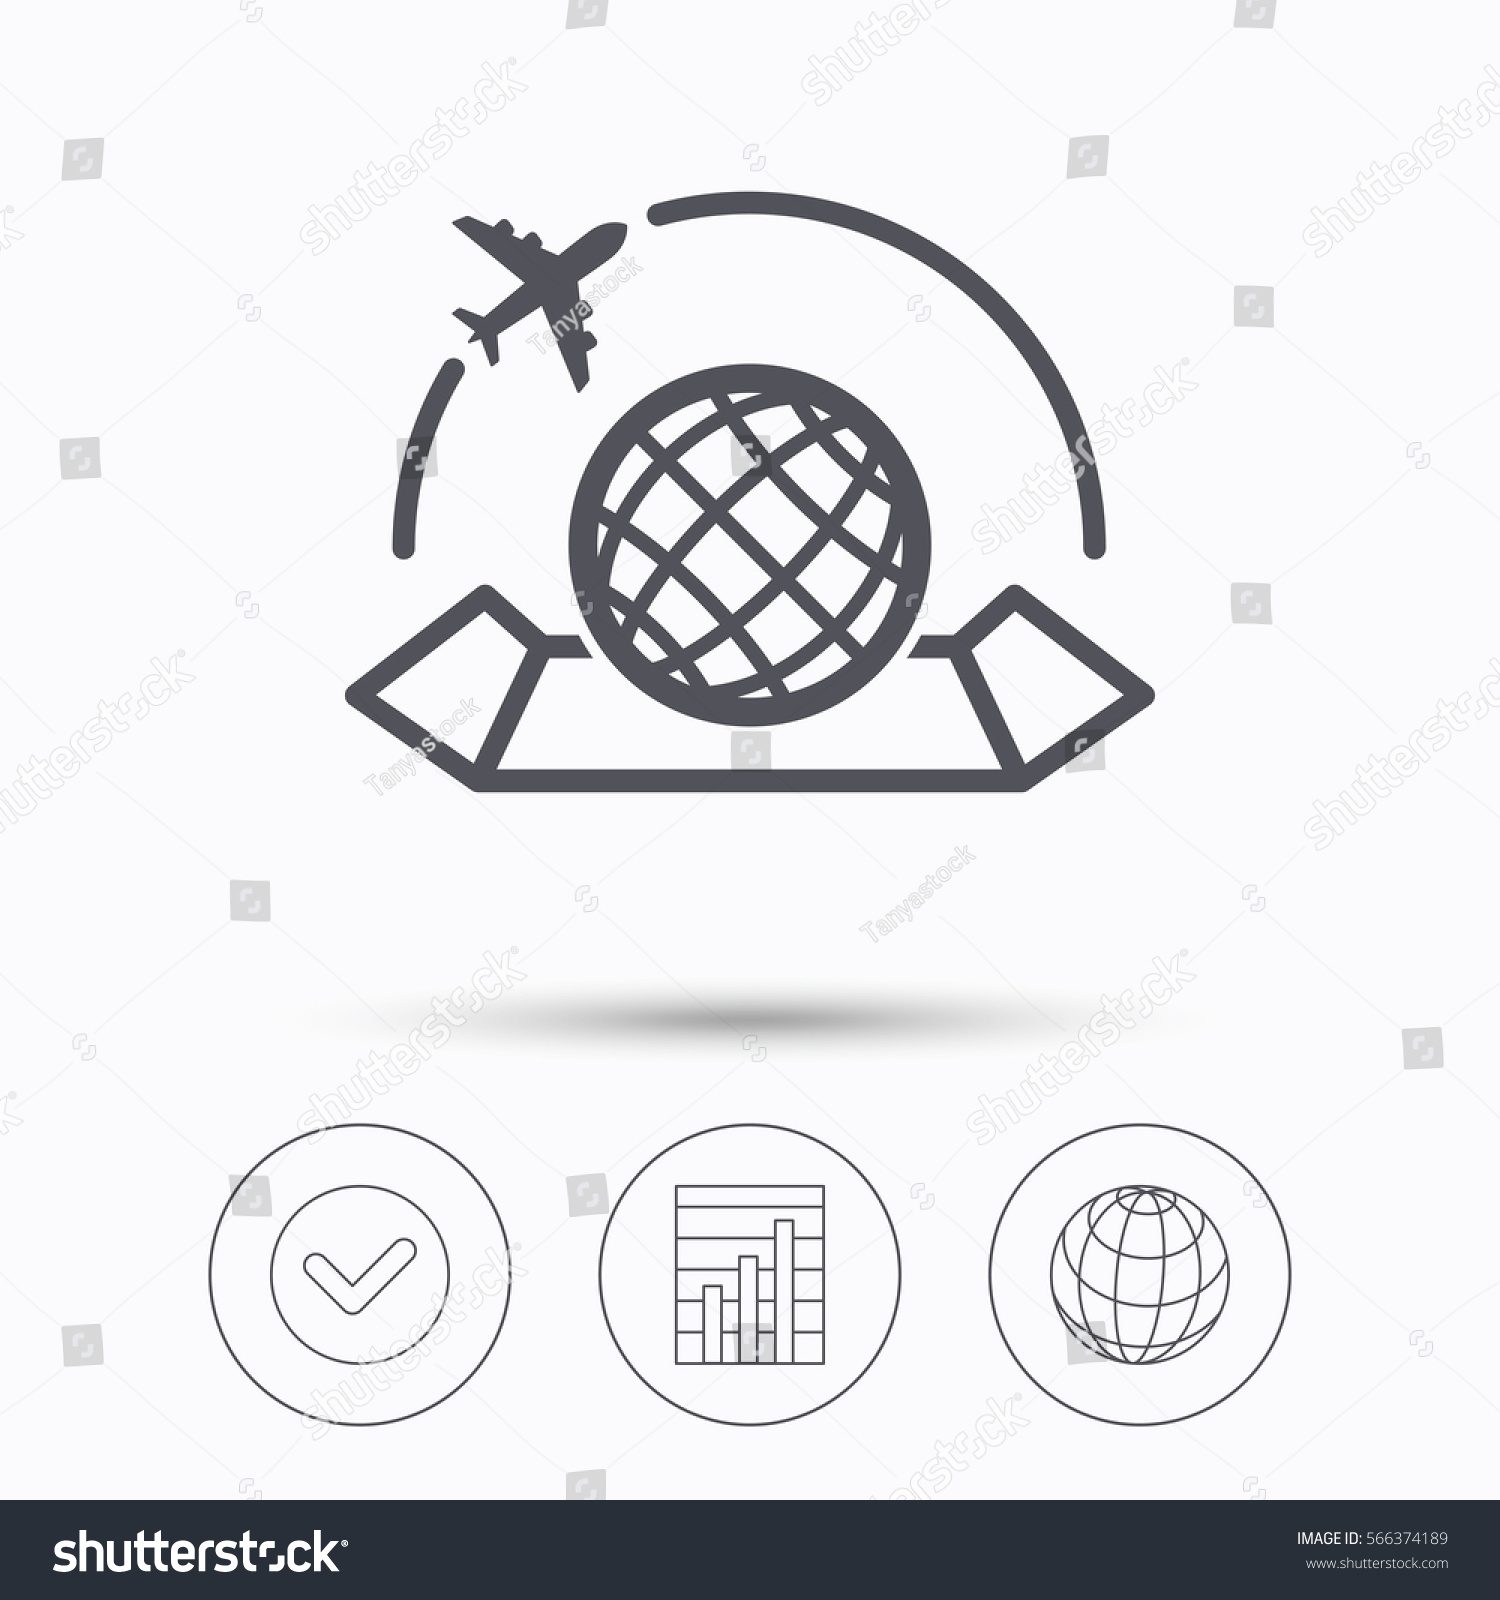 hight resolution of world map icon globe with airplane sign plane travel symbol check tick graph chart and internet globe linear icons on white background illustration